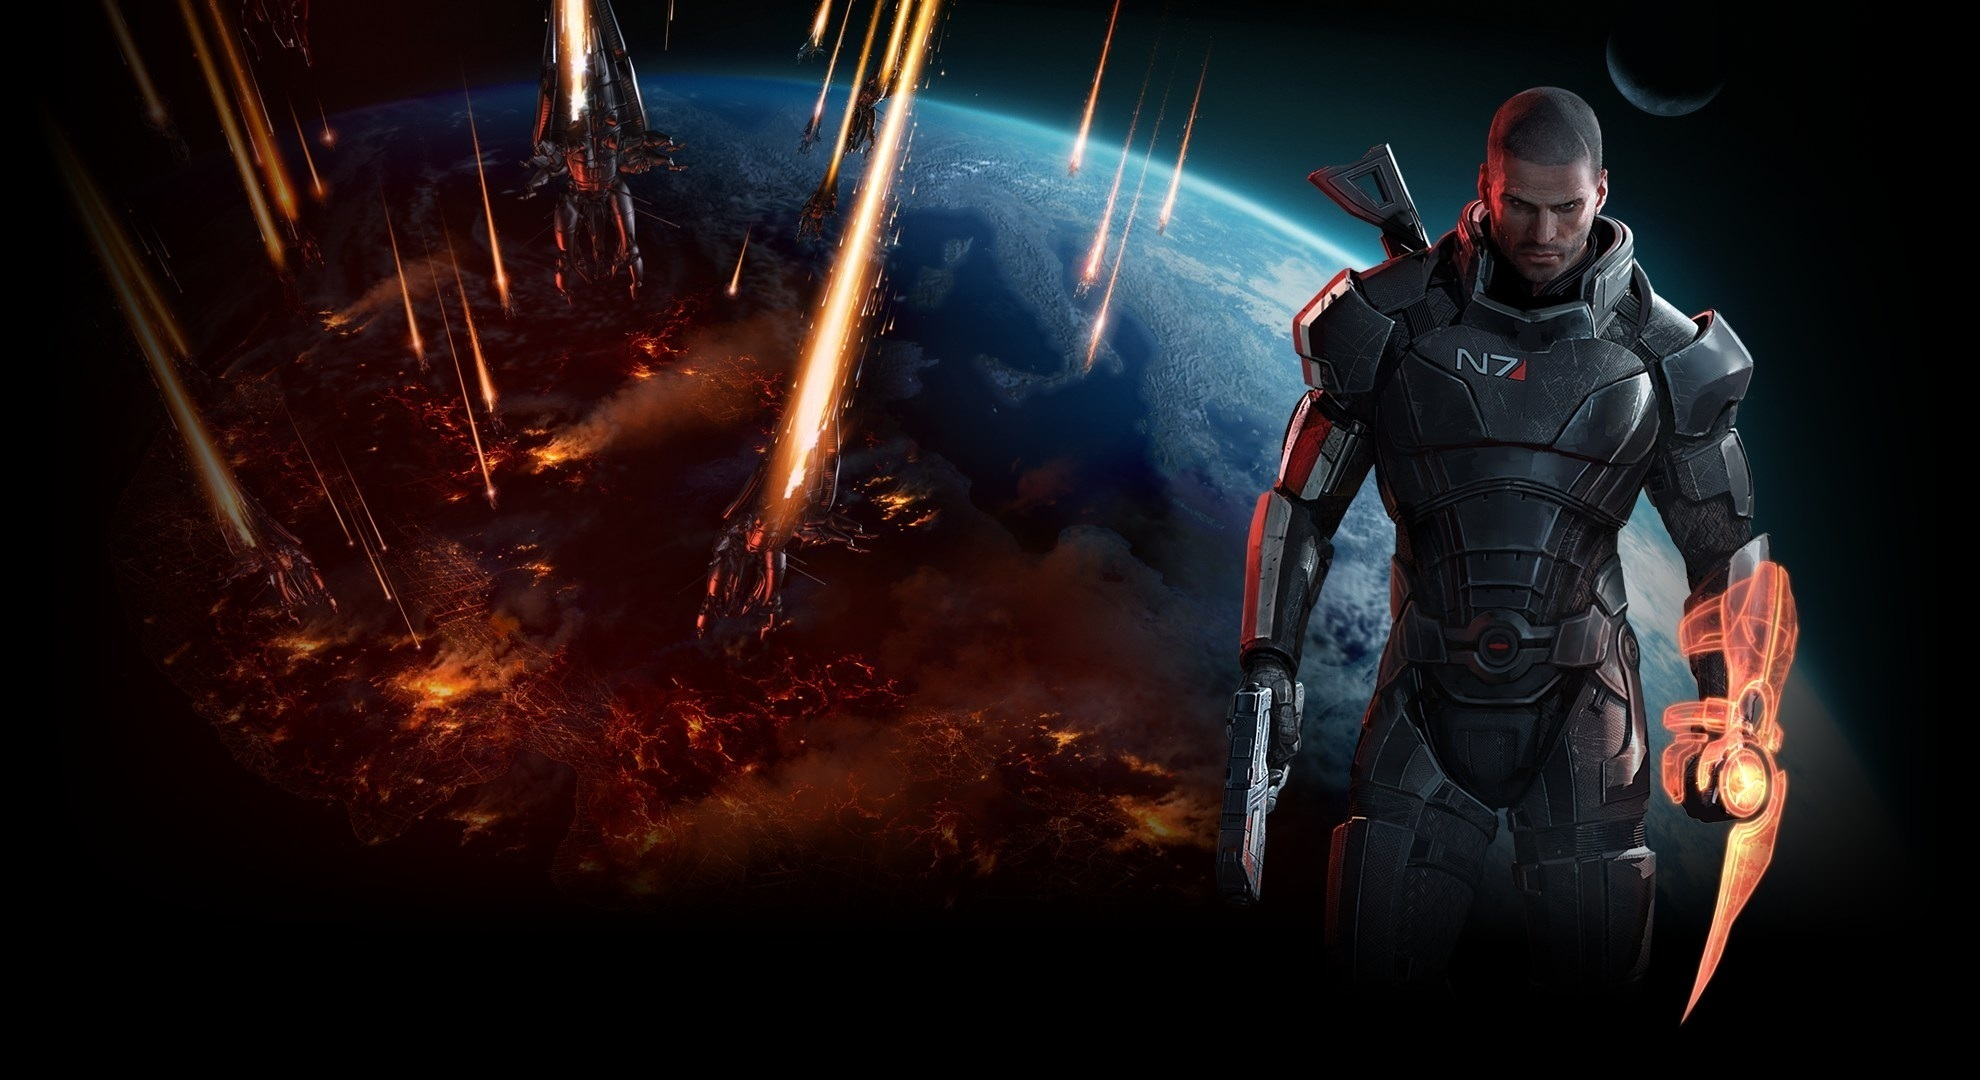 Free Download Mass Effect 3 Wallpaperhd 108p 1920x1080 Captain